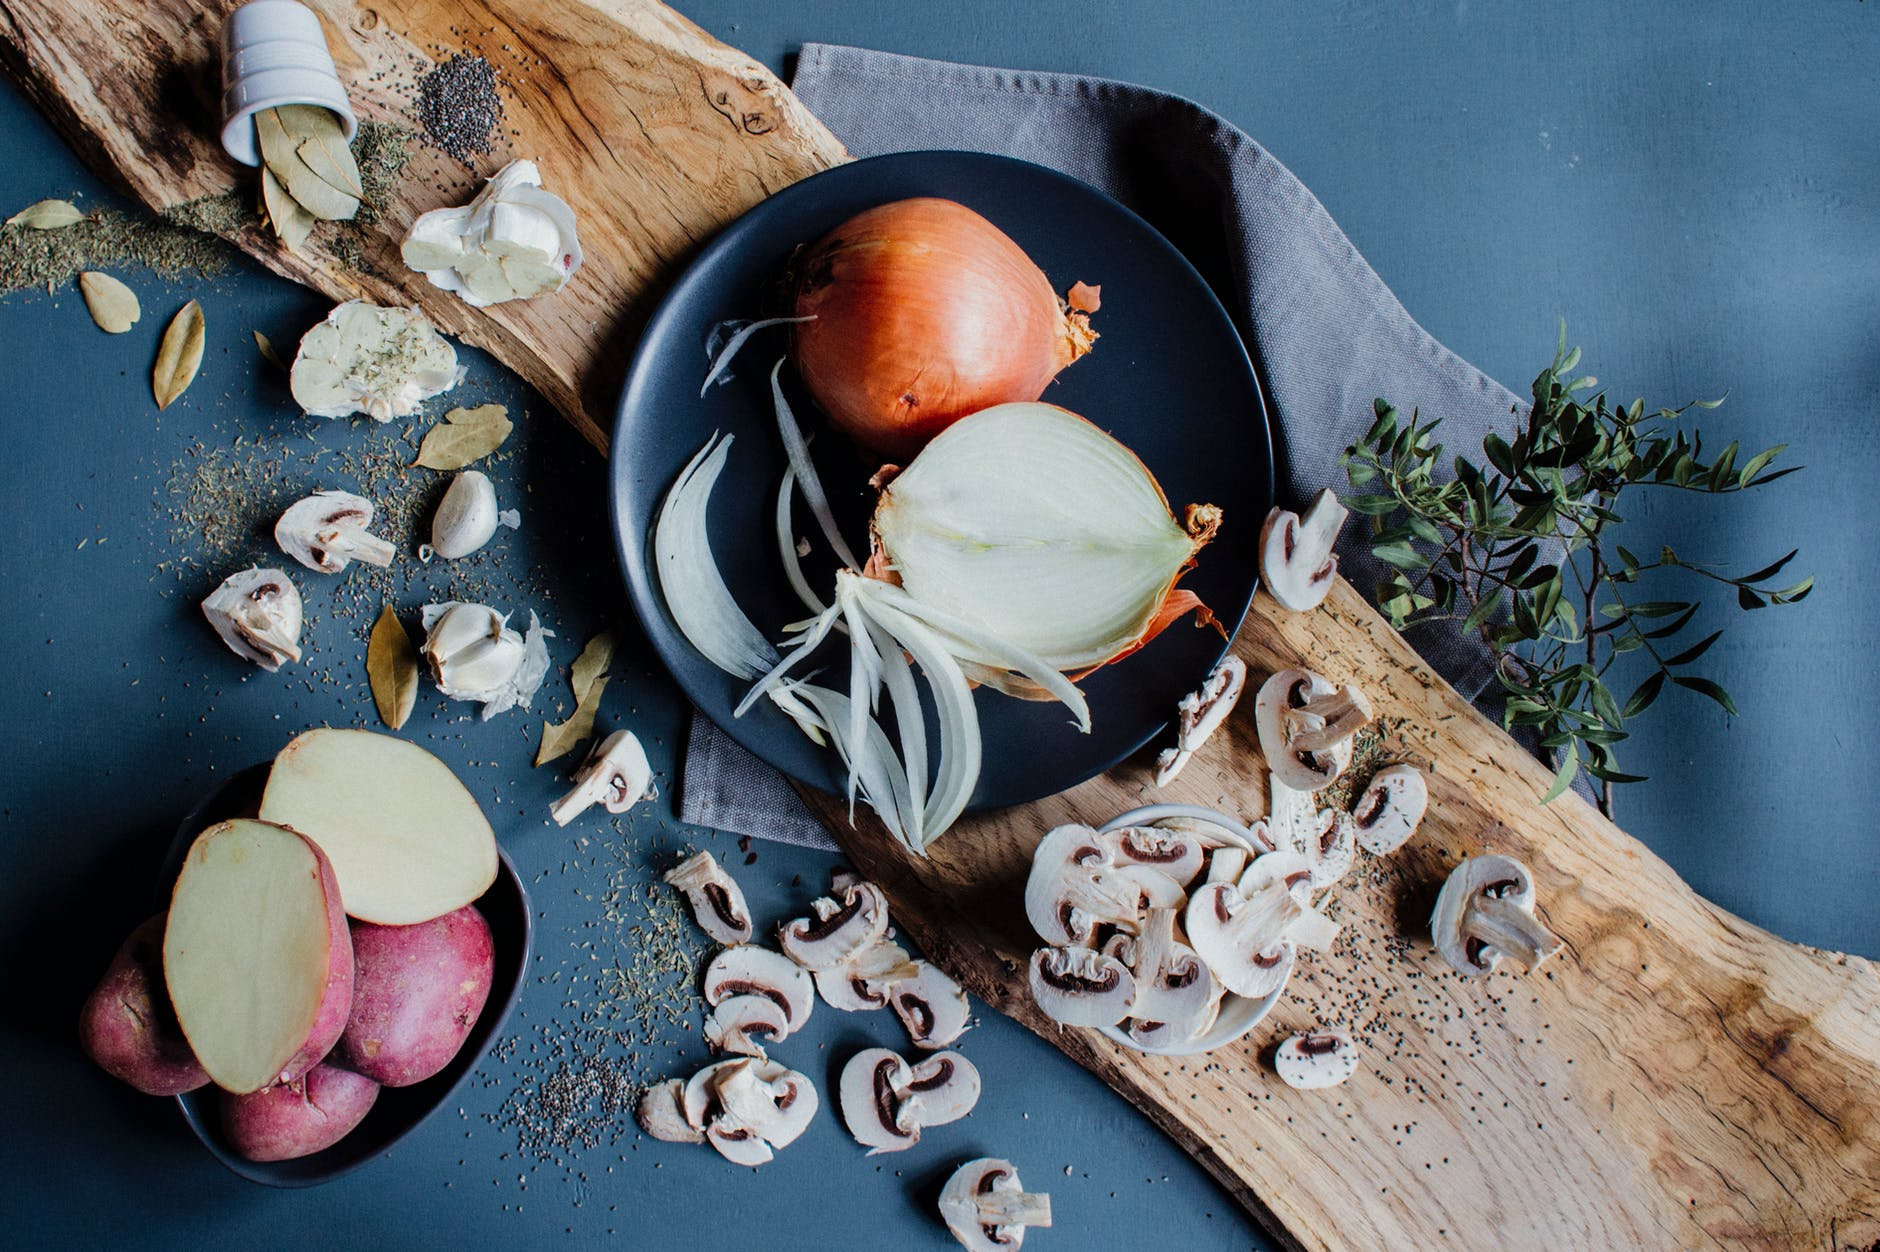 plate of raw onions placed on wooden board with potatoes and chopped mushrooms